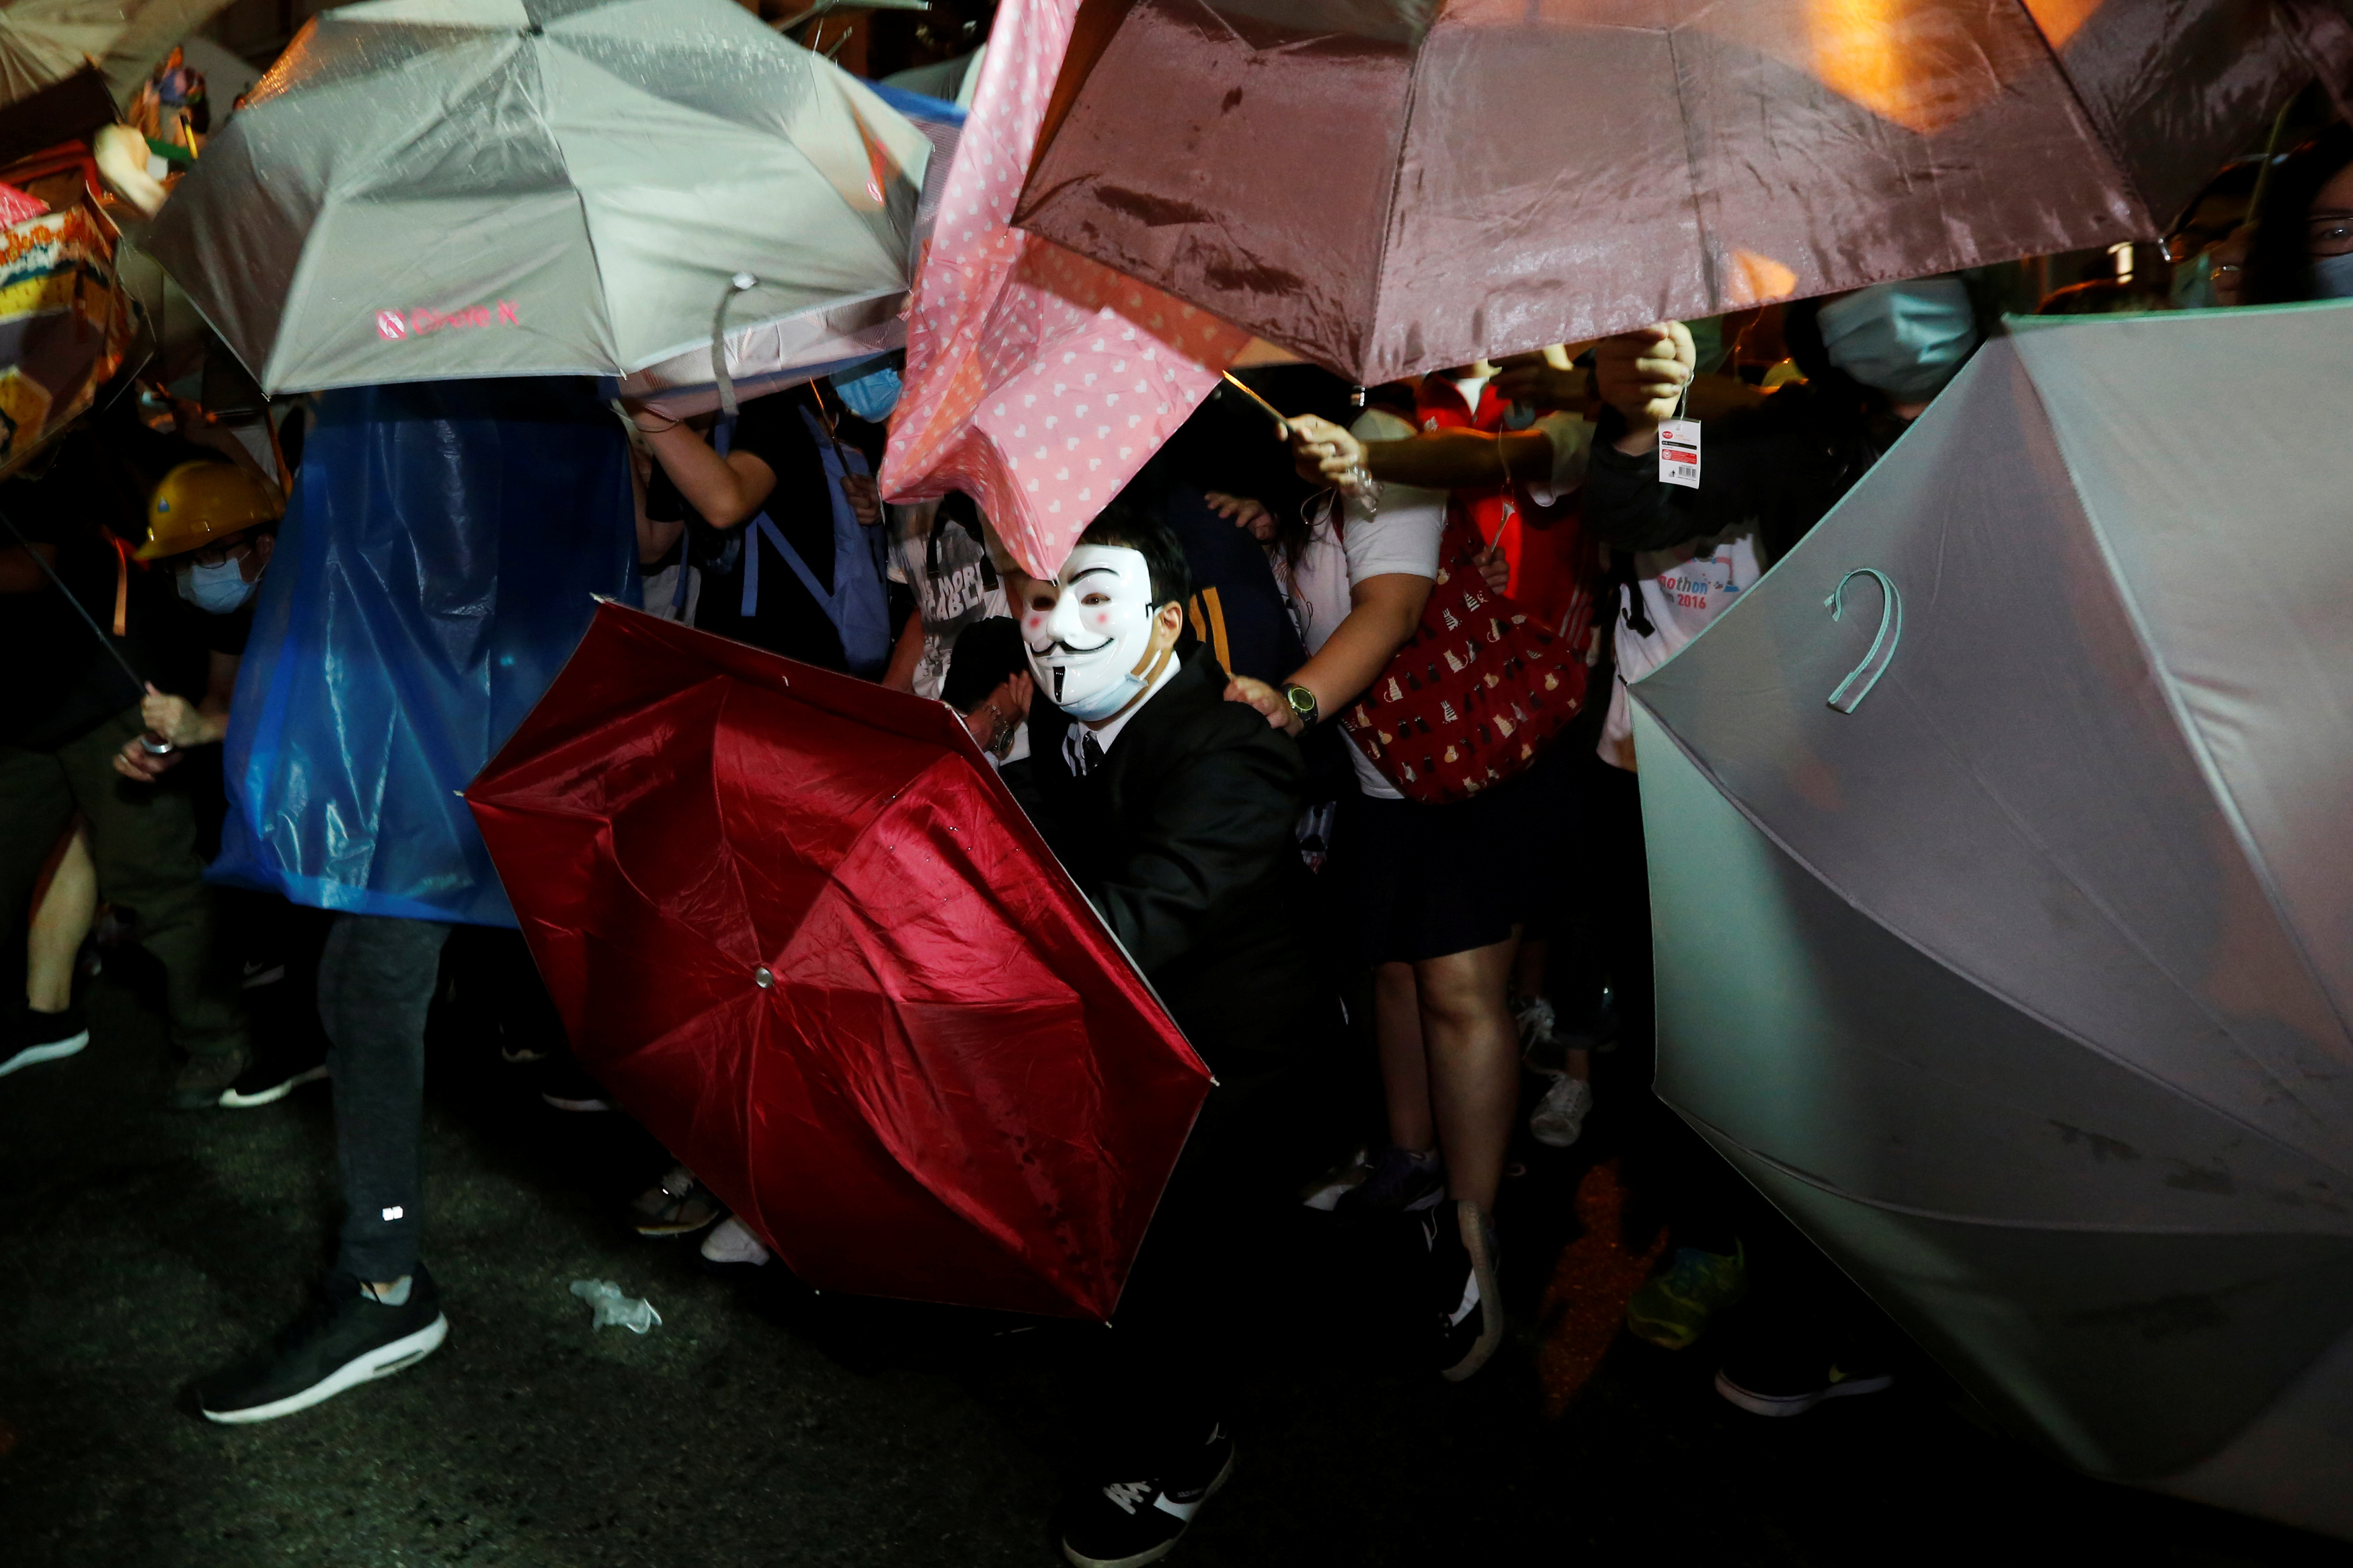 A protester wears Guy Fawkes mask during a confrontation with the police outside China Liaison Office in Hong Kong, China, November 6, 2016. REUTERS/Bobby Yip - RTX2S652